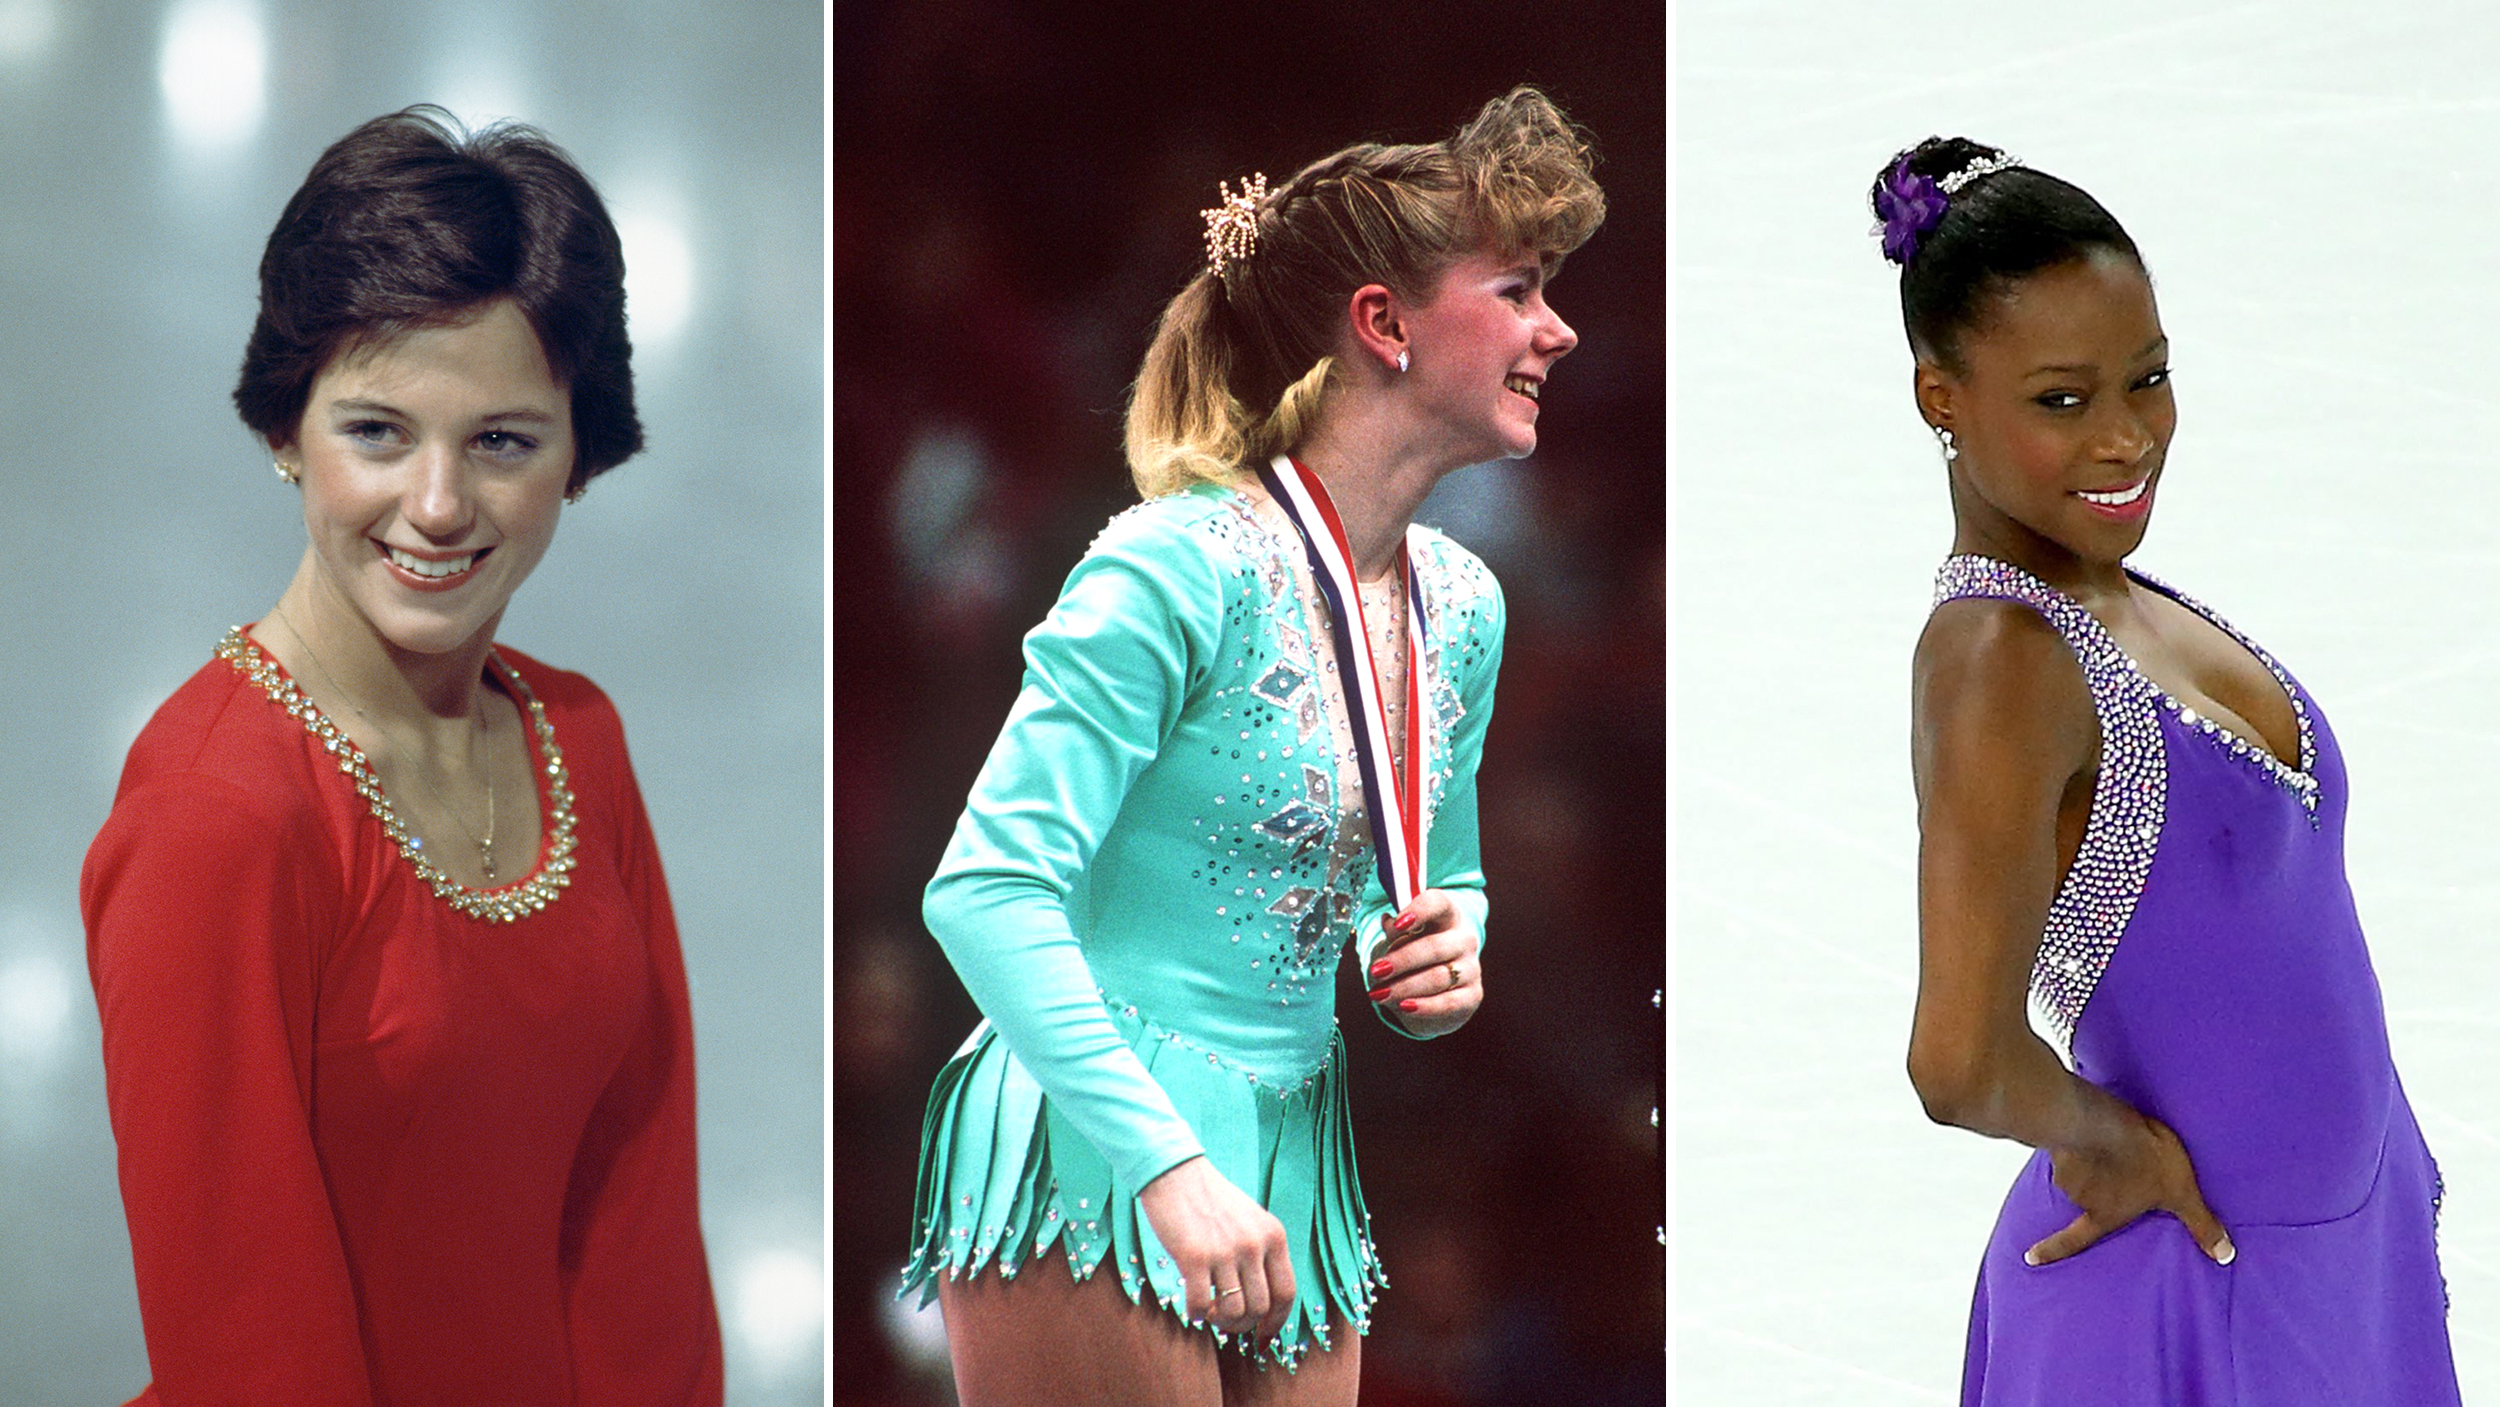 Dorothy Hamill, Before and After the Olympics photo